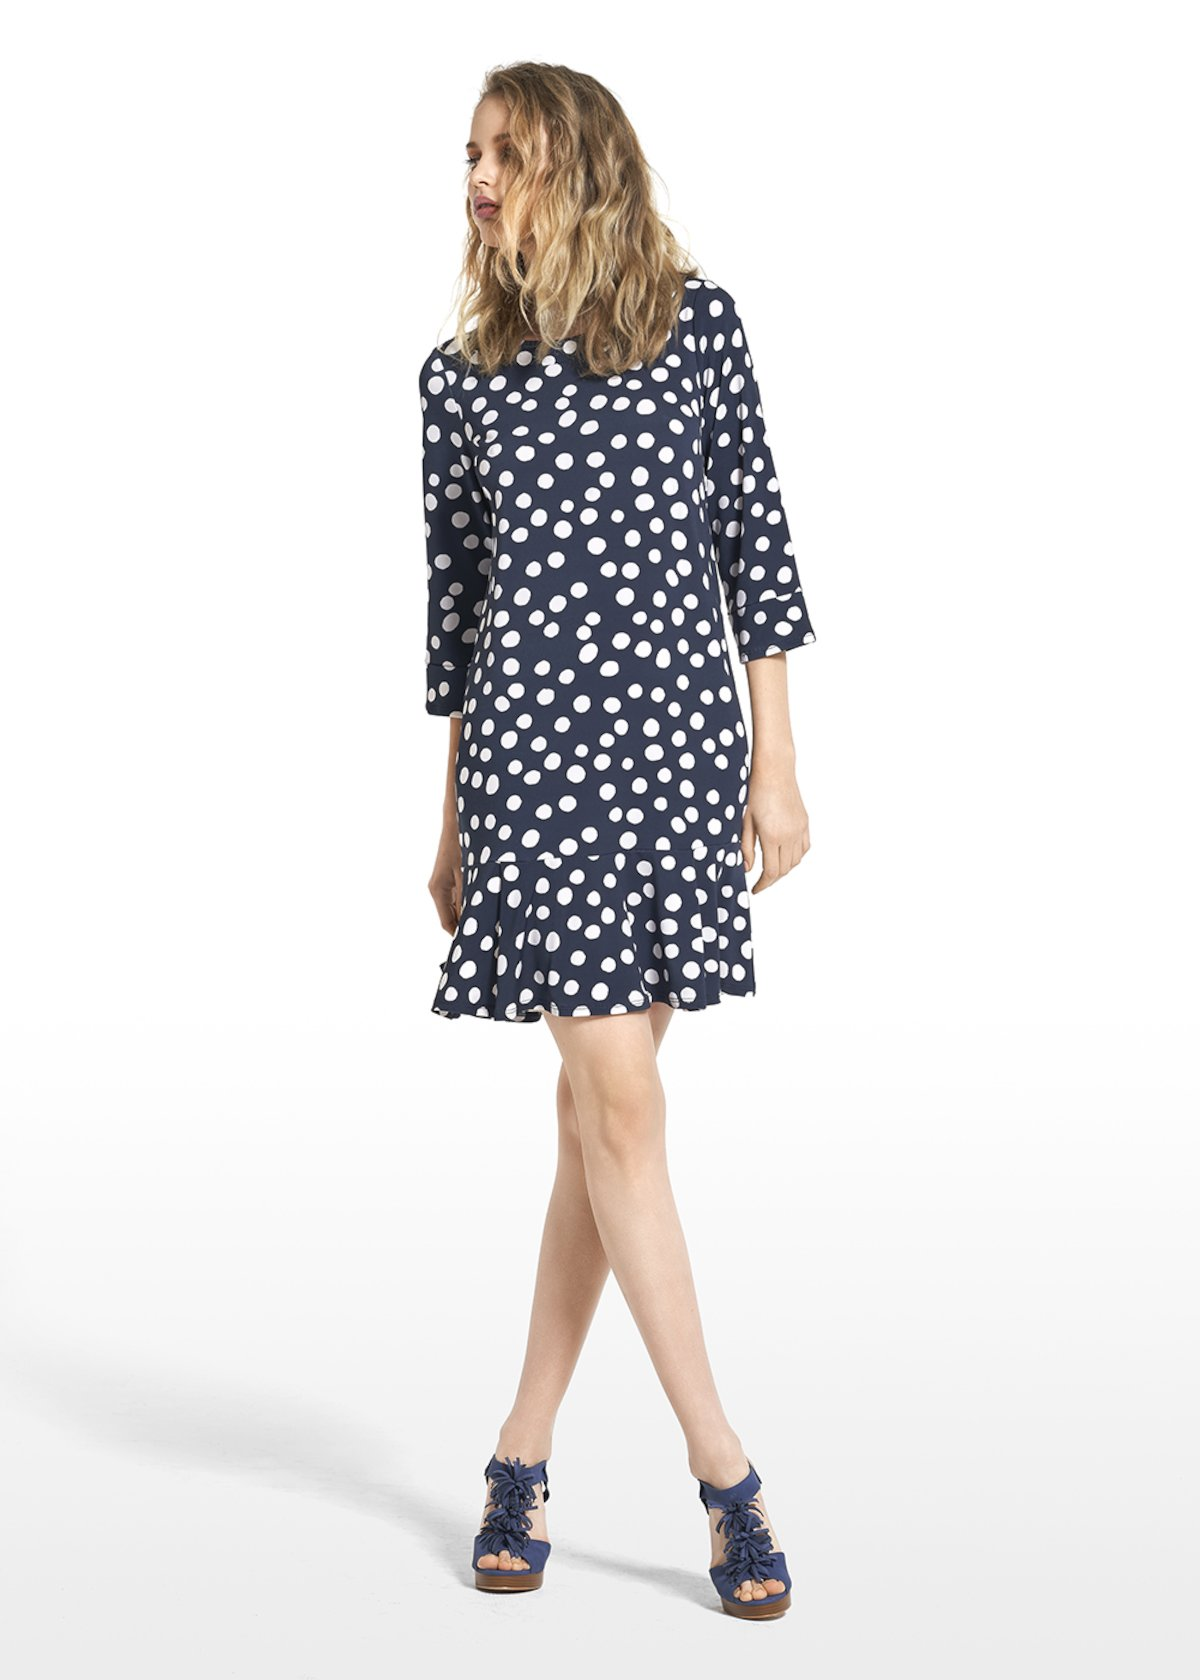 Dress Alois with polka dot pattern - Medium Blue / White Pois - Woman - Category image